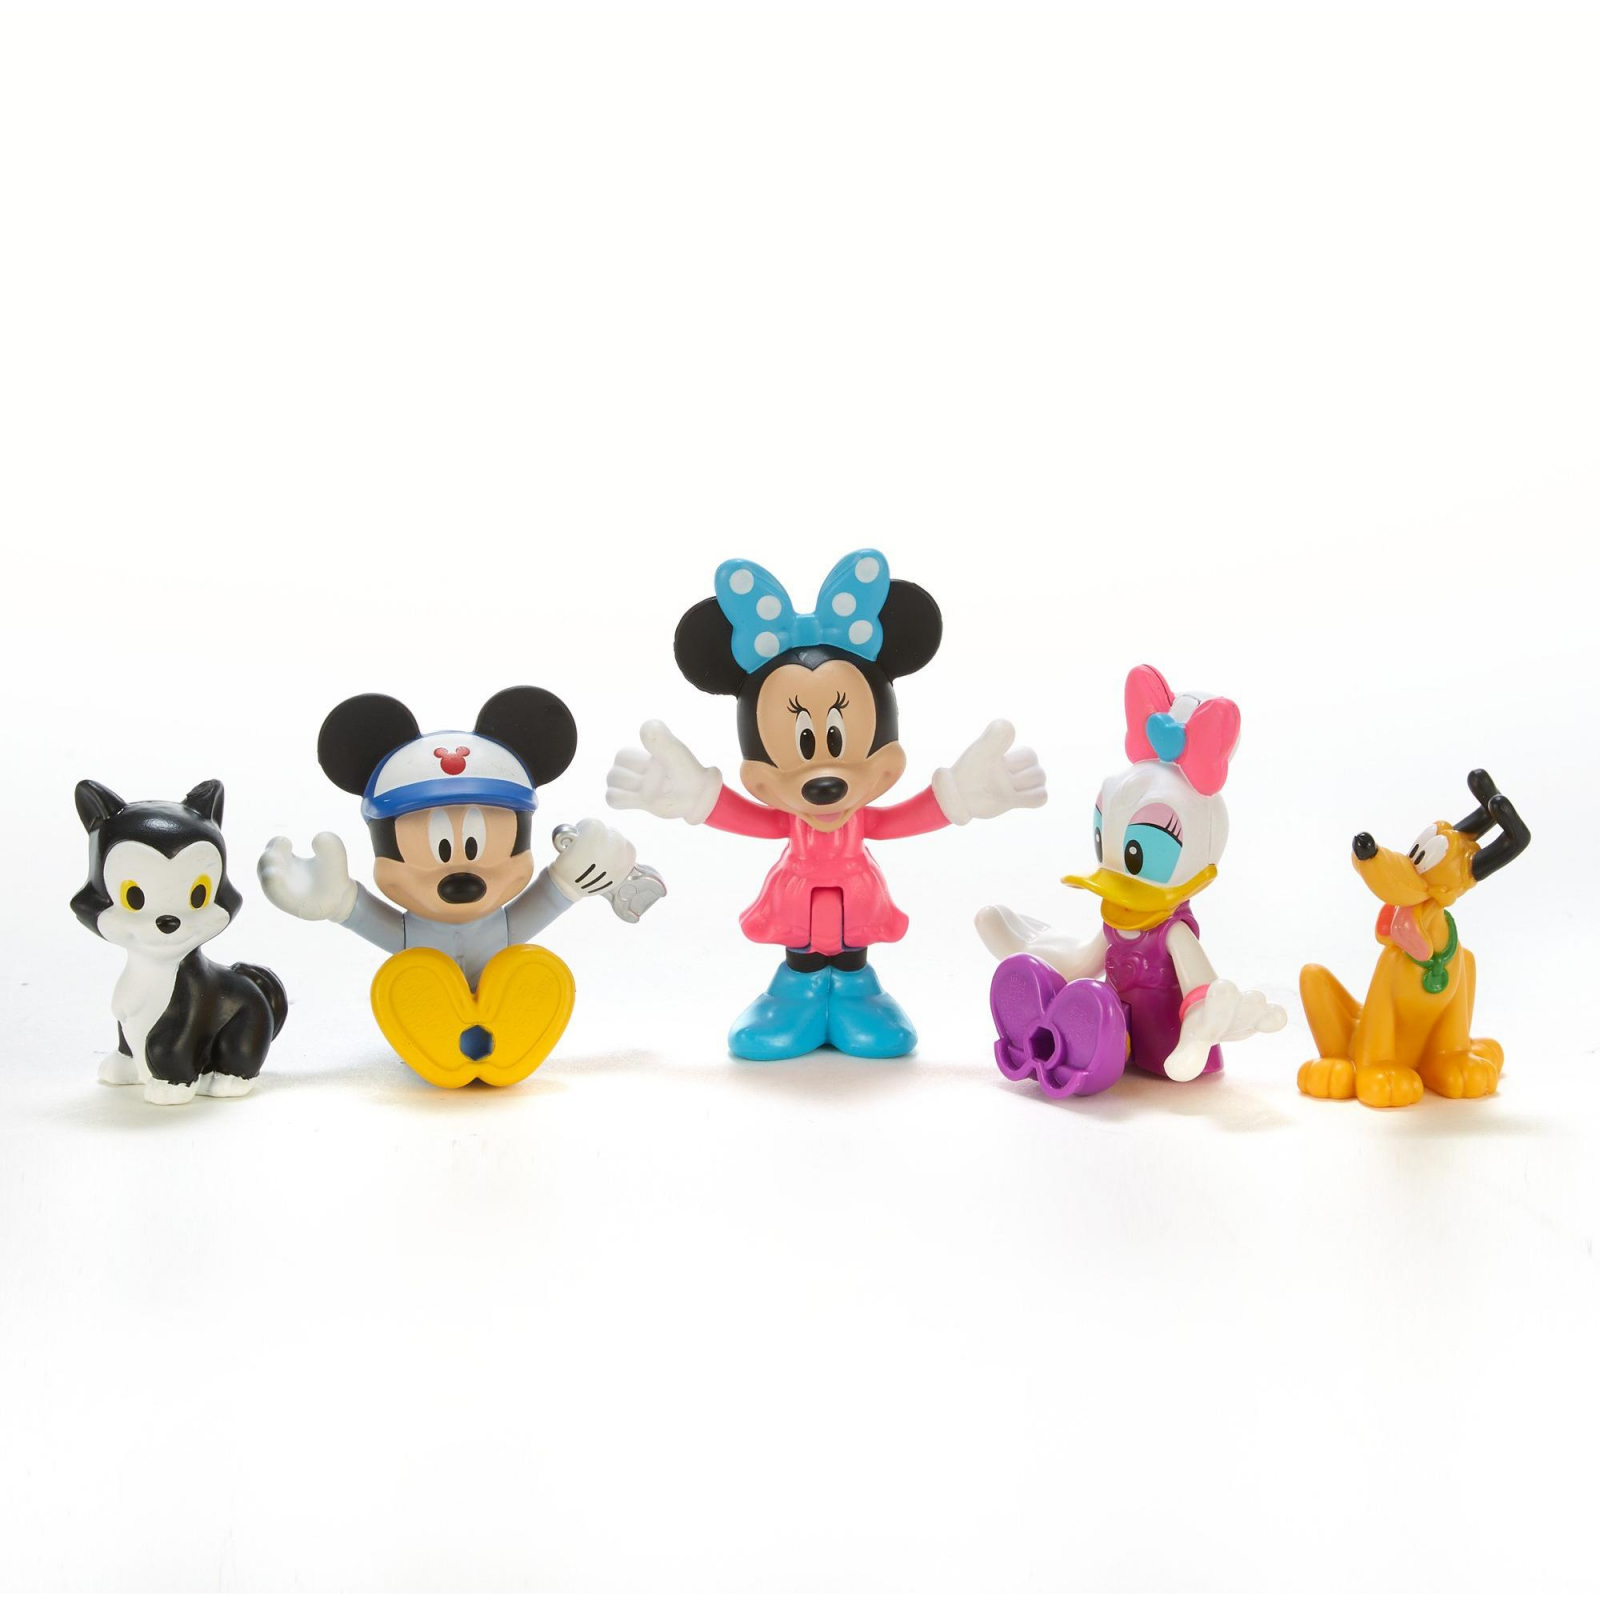 Disney Minnie Mouse Fisher Price Collectible Poseable 5pcs